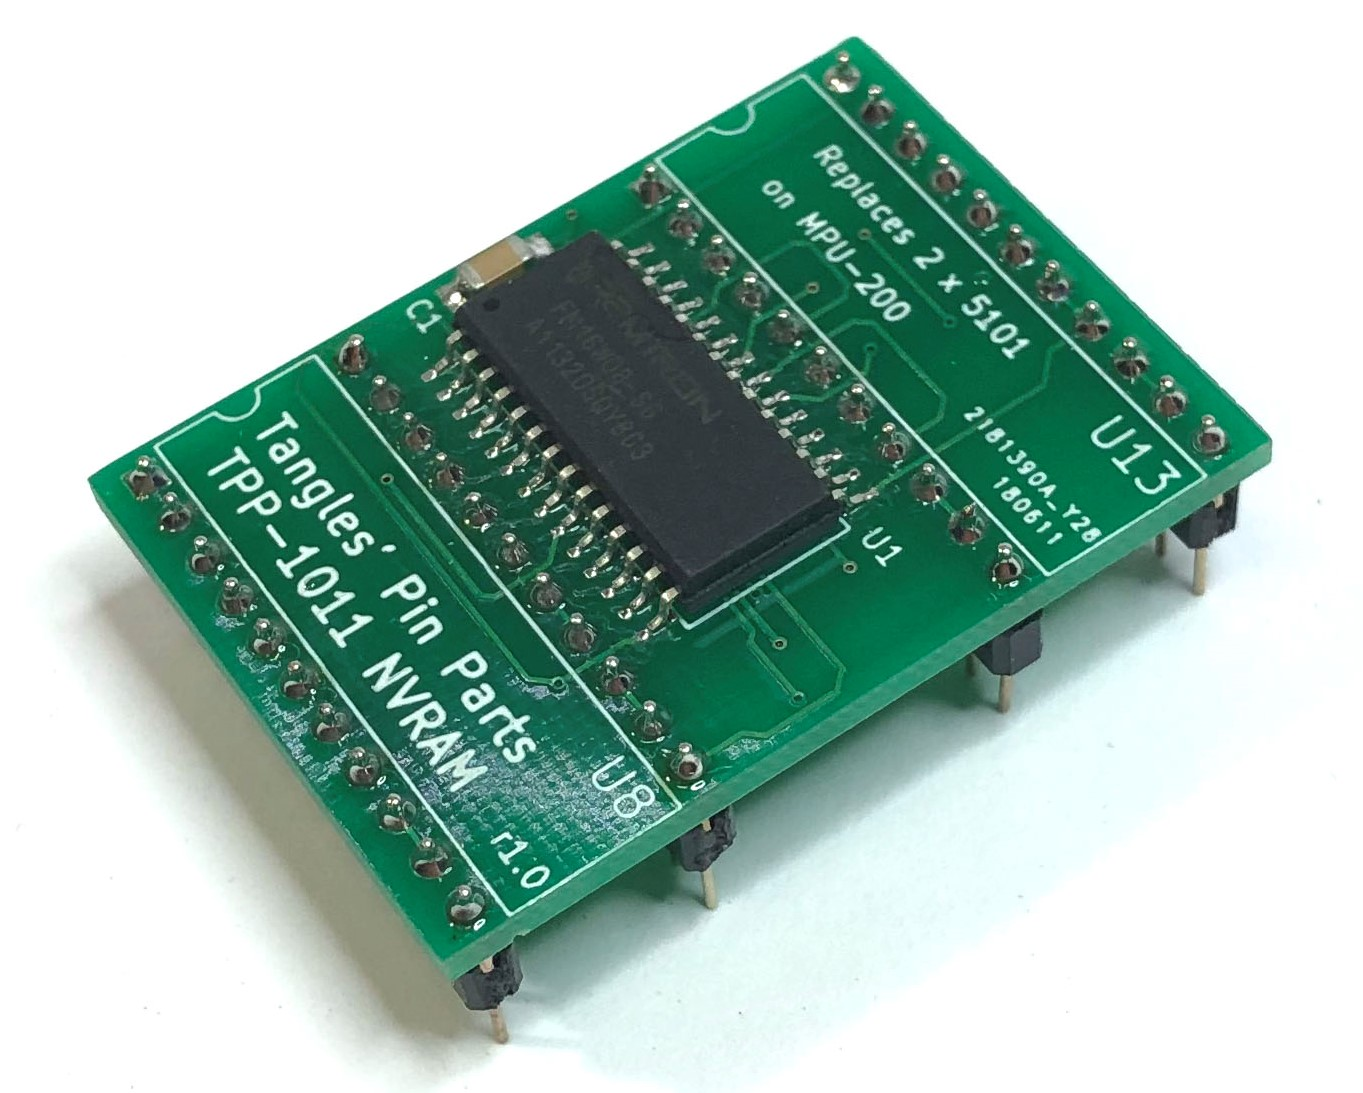 Pinball NVRAM for Stern MPU-200 machines